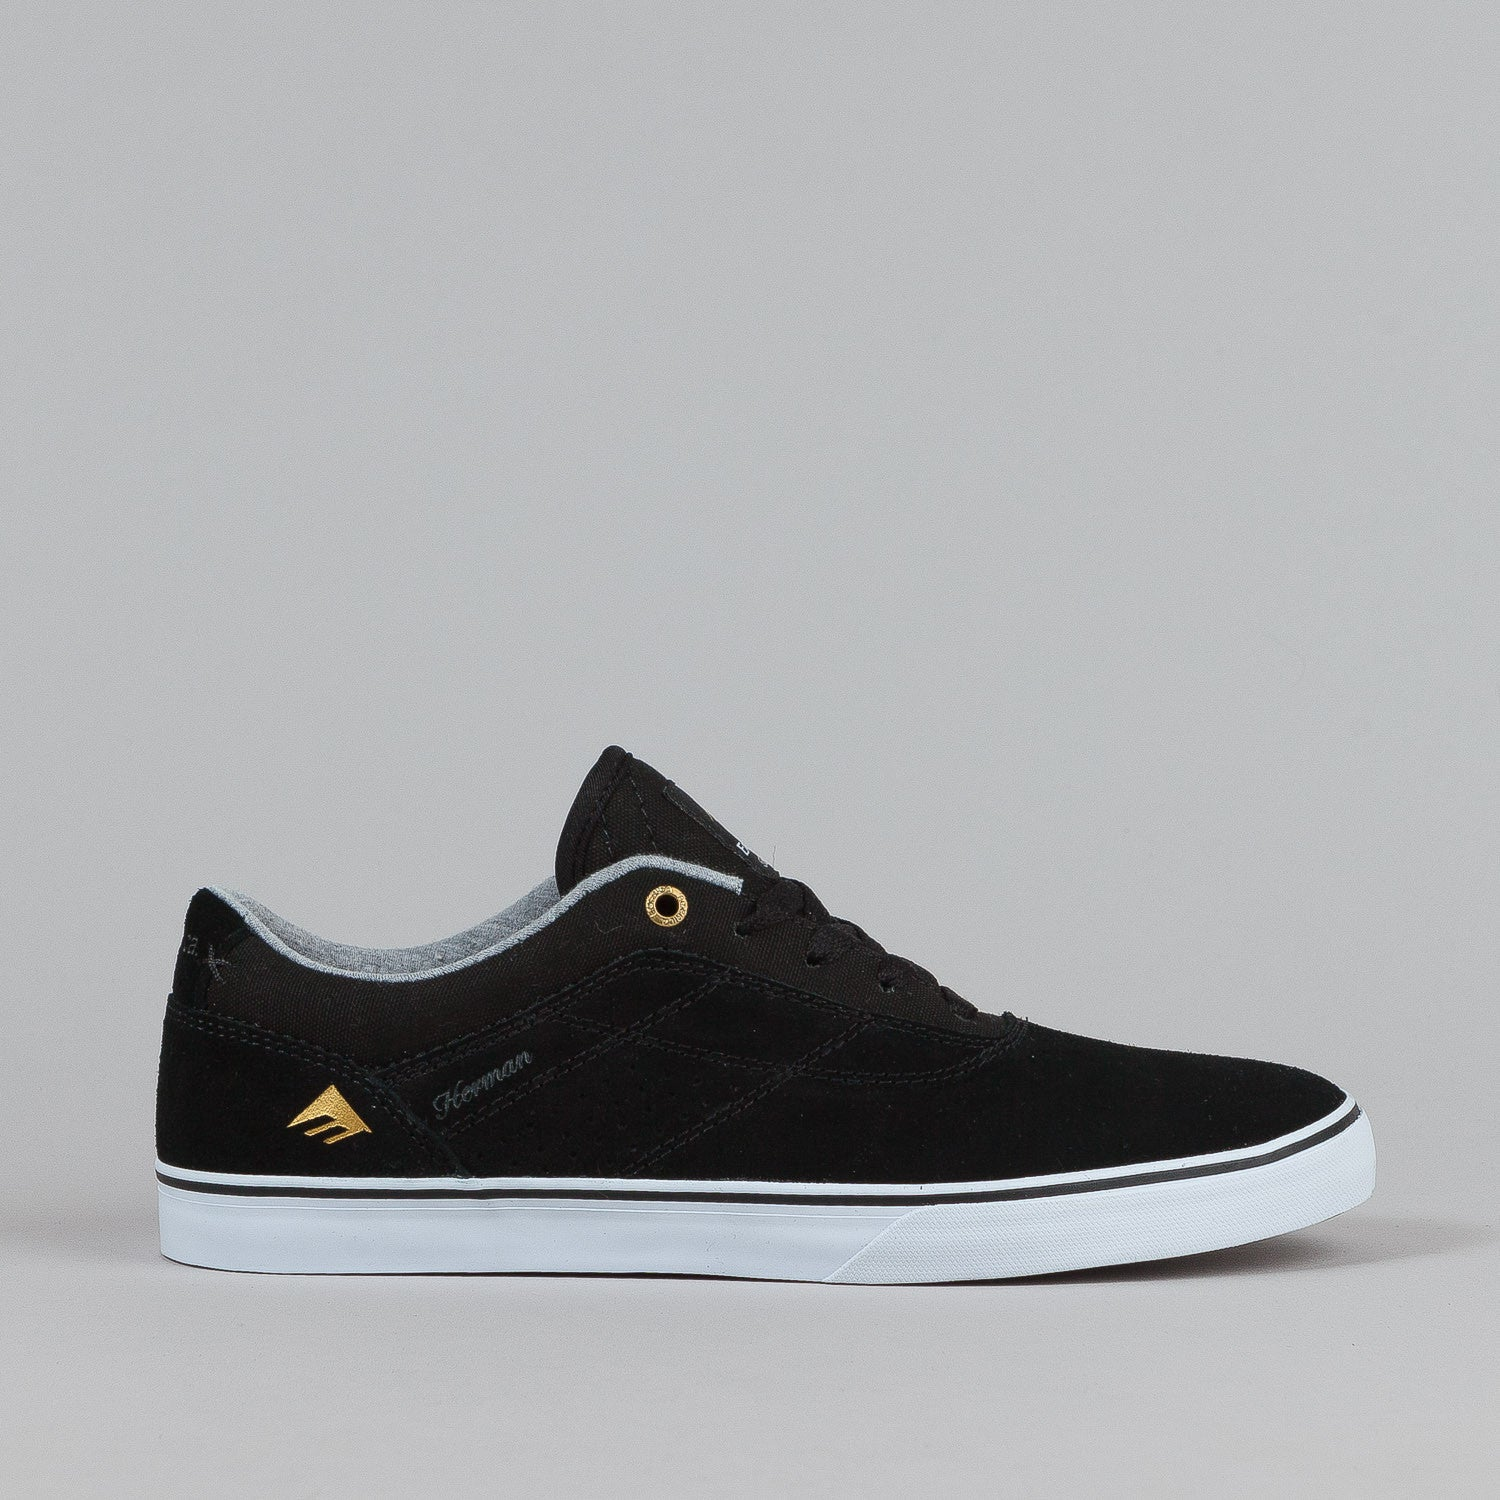 Emerica The Herman G6 Vulc Shoes - Black / White